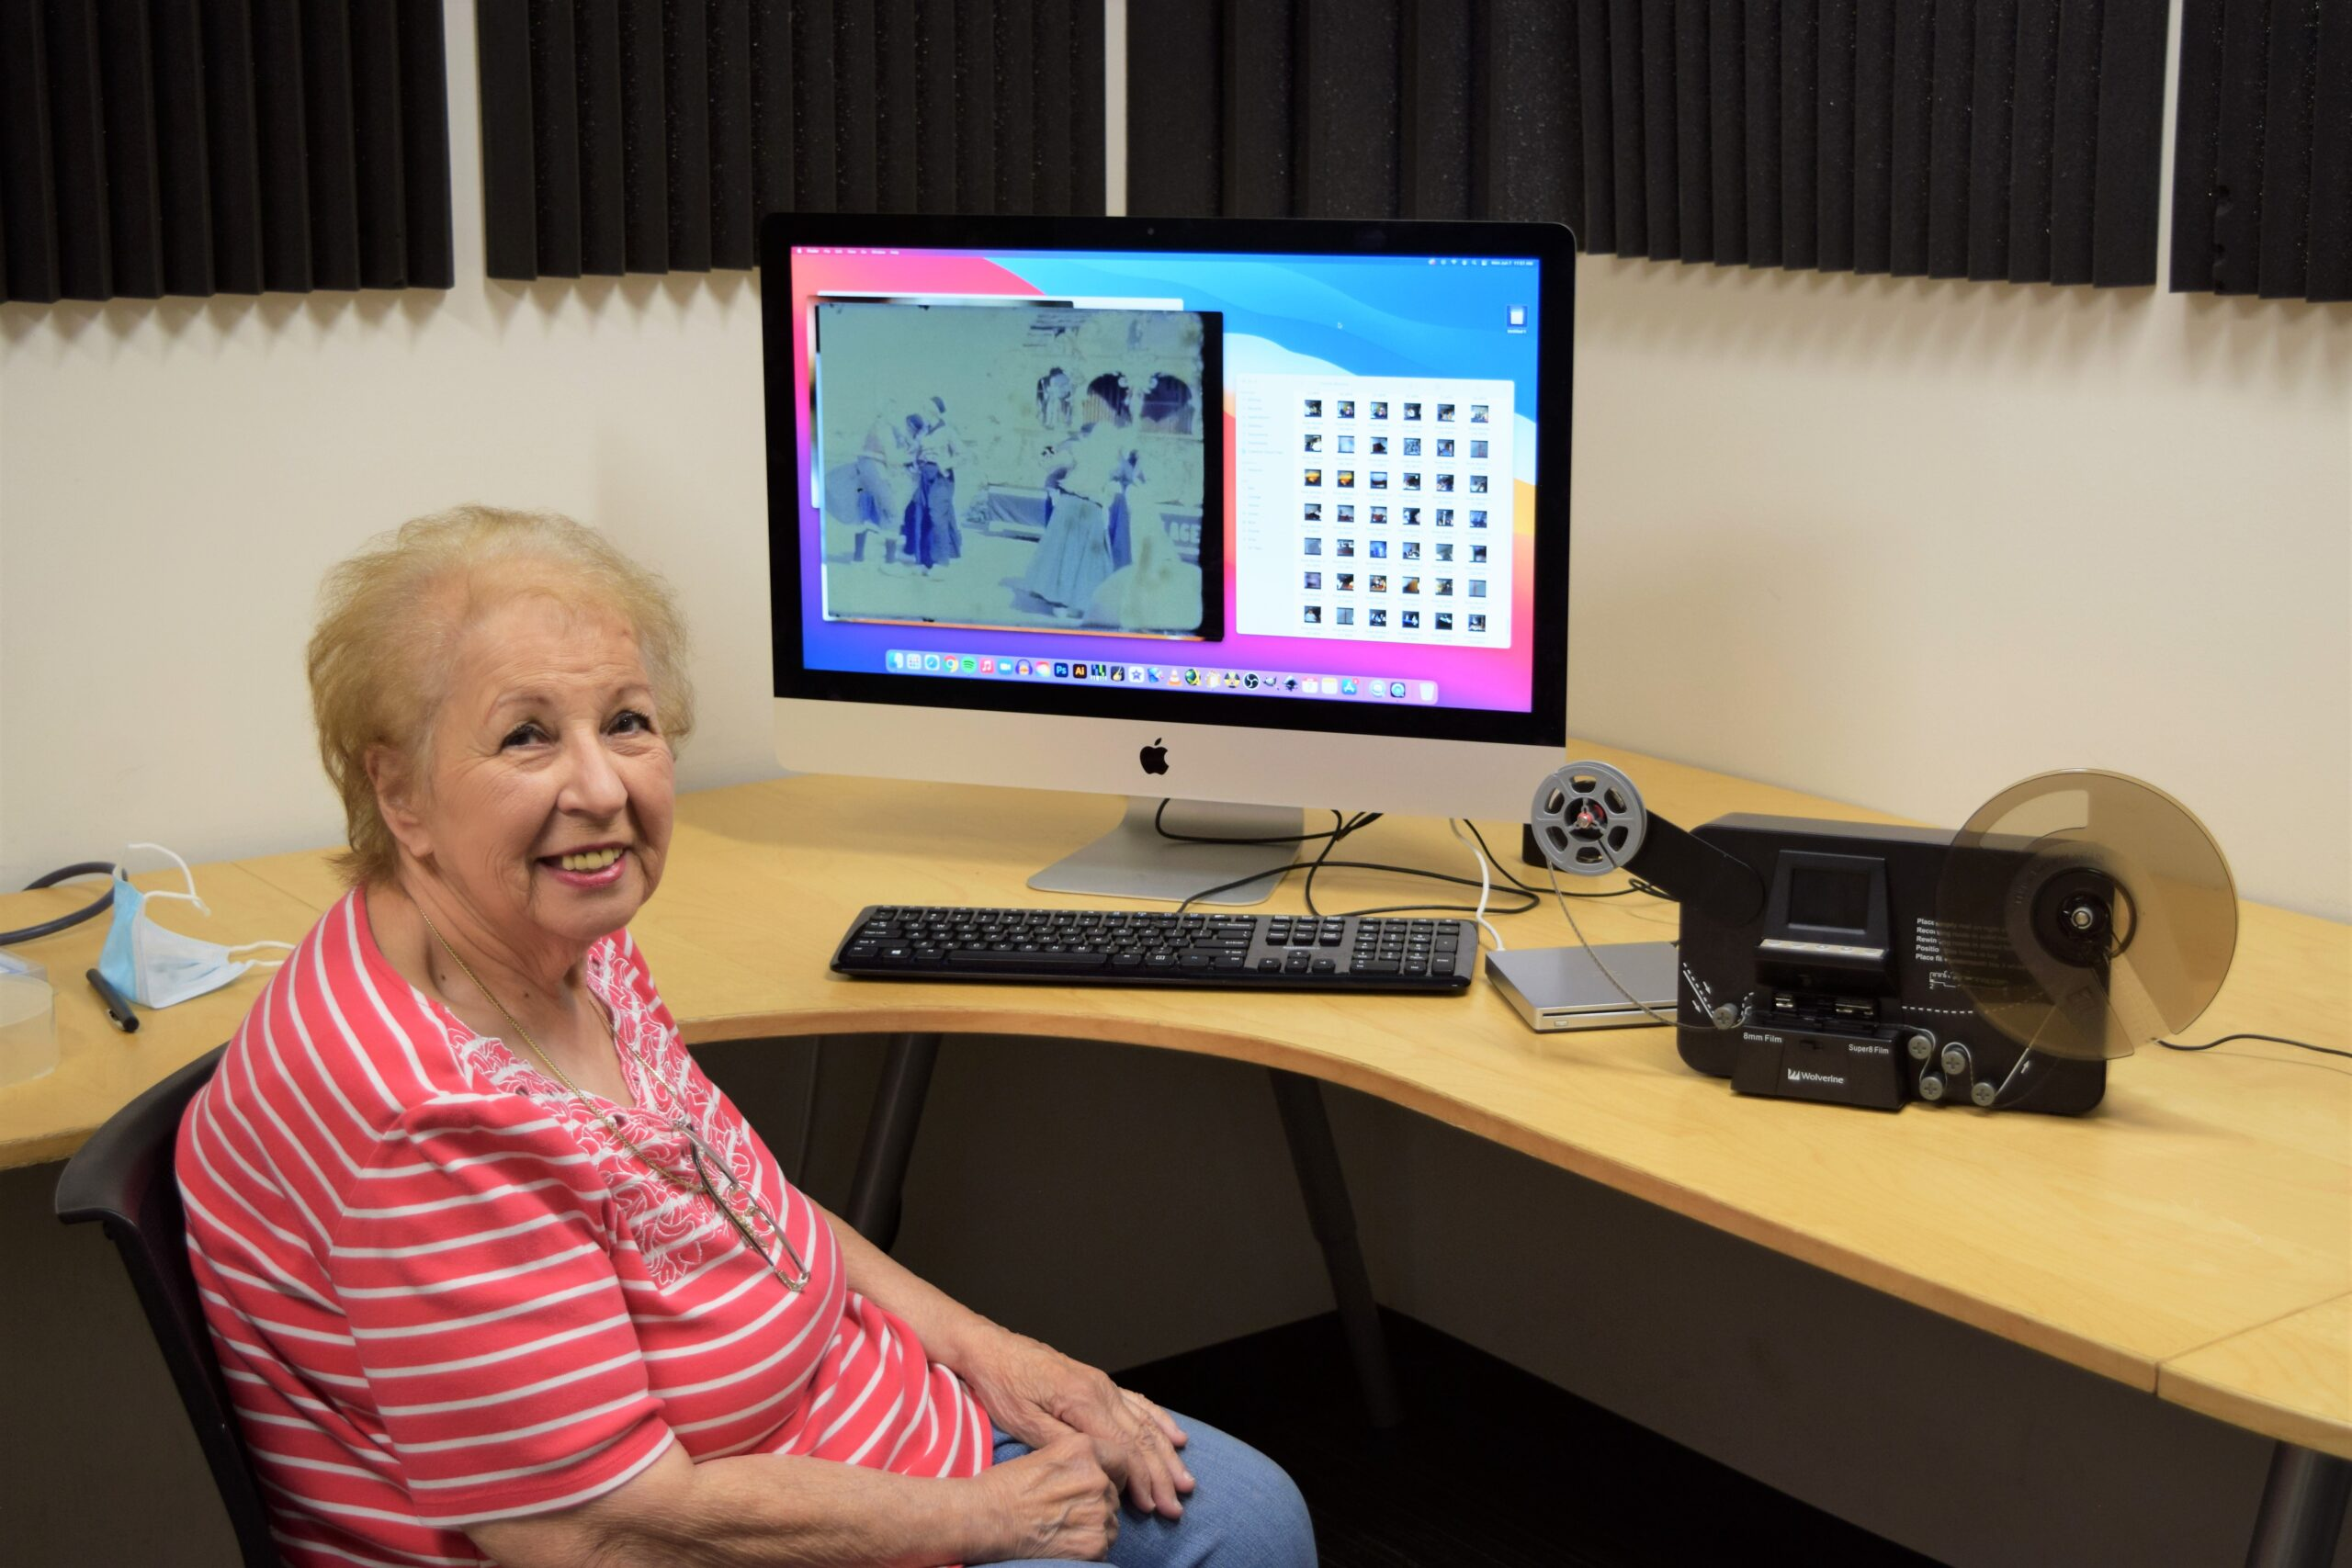 Cherished memories saved for the next generation with help from the library; Rose Falcone learns to edit film to leave memories for her grandchildren